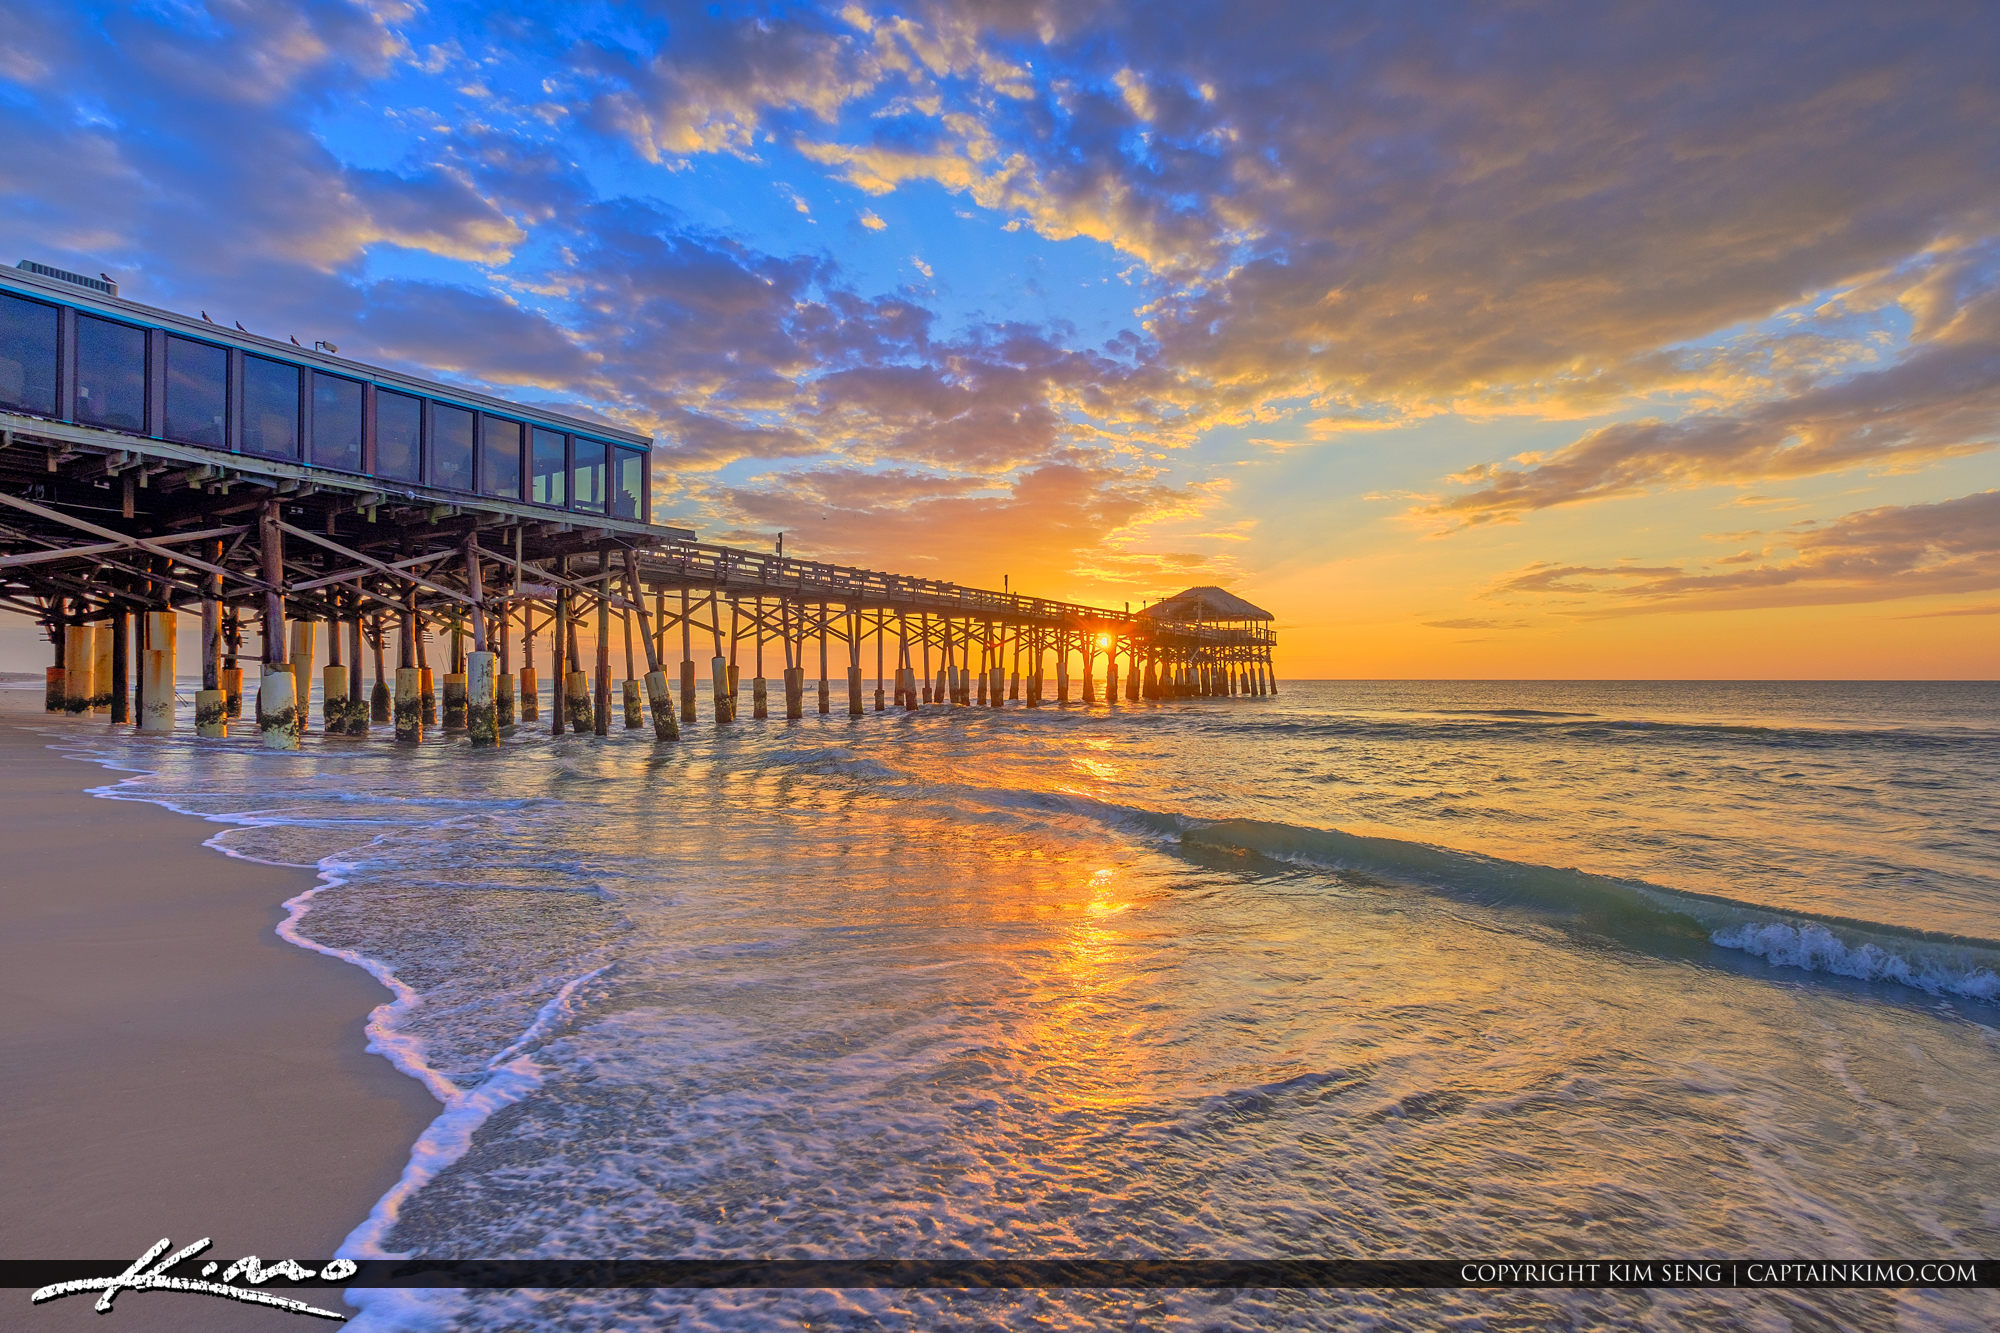 Cocoa Beach Pier Cocoa Beach Florida Sunrise HDR photography